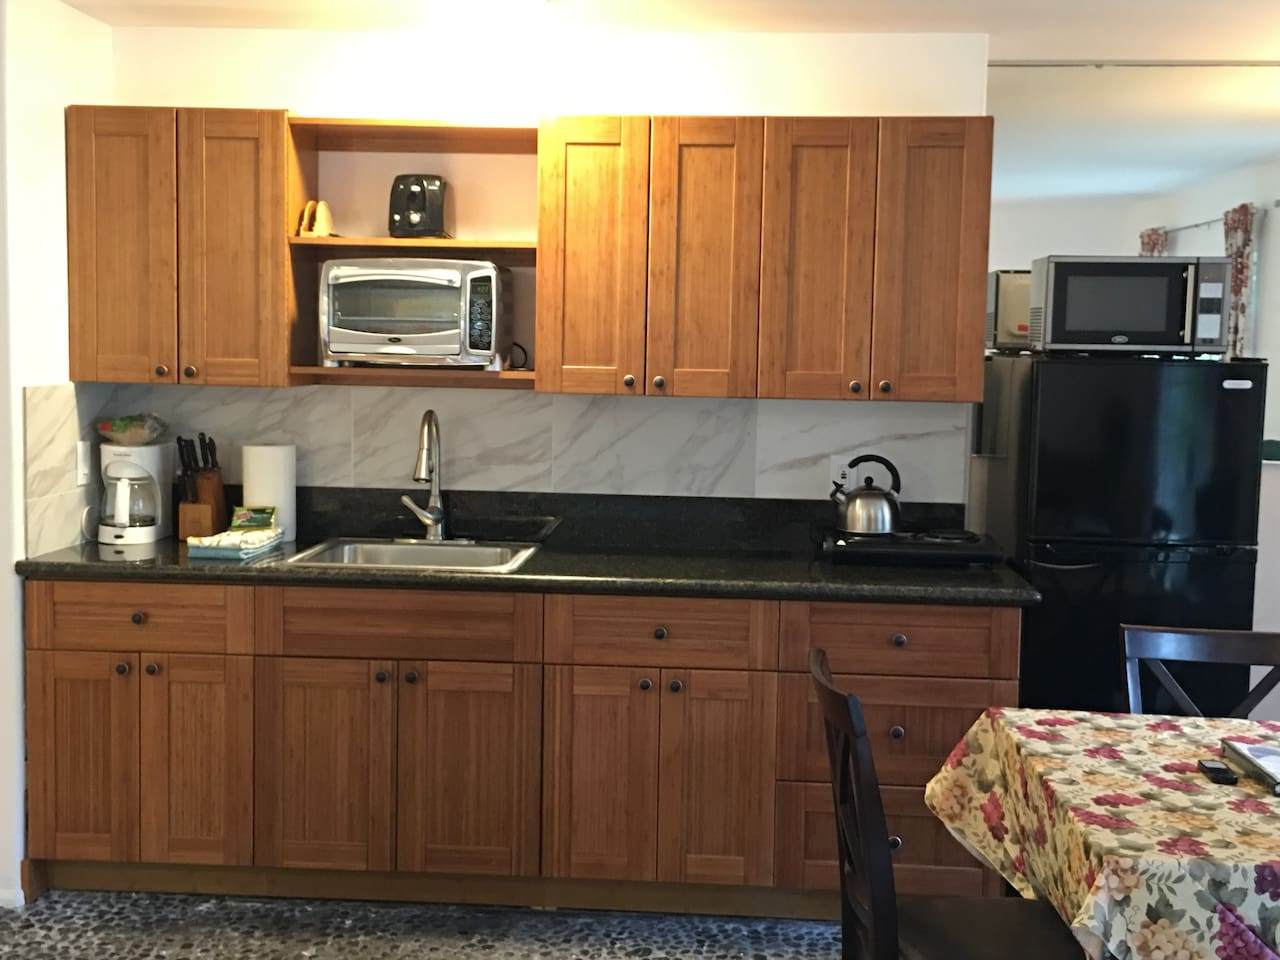 Recently remodeled kitchen and dining area.